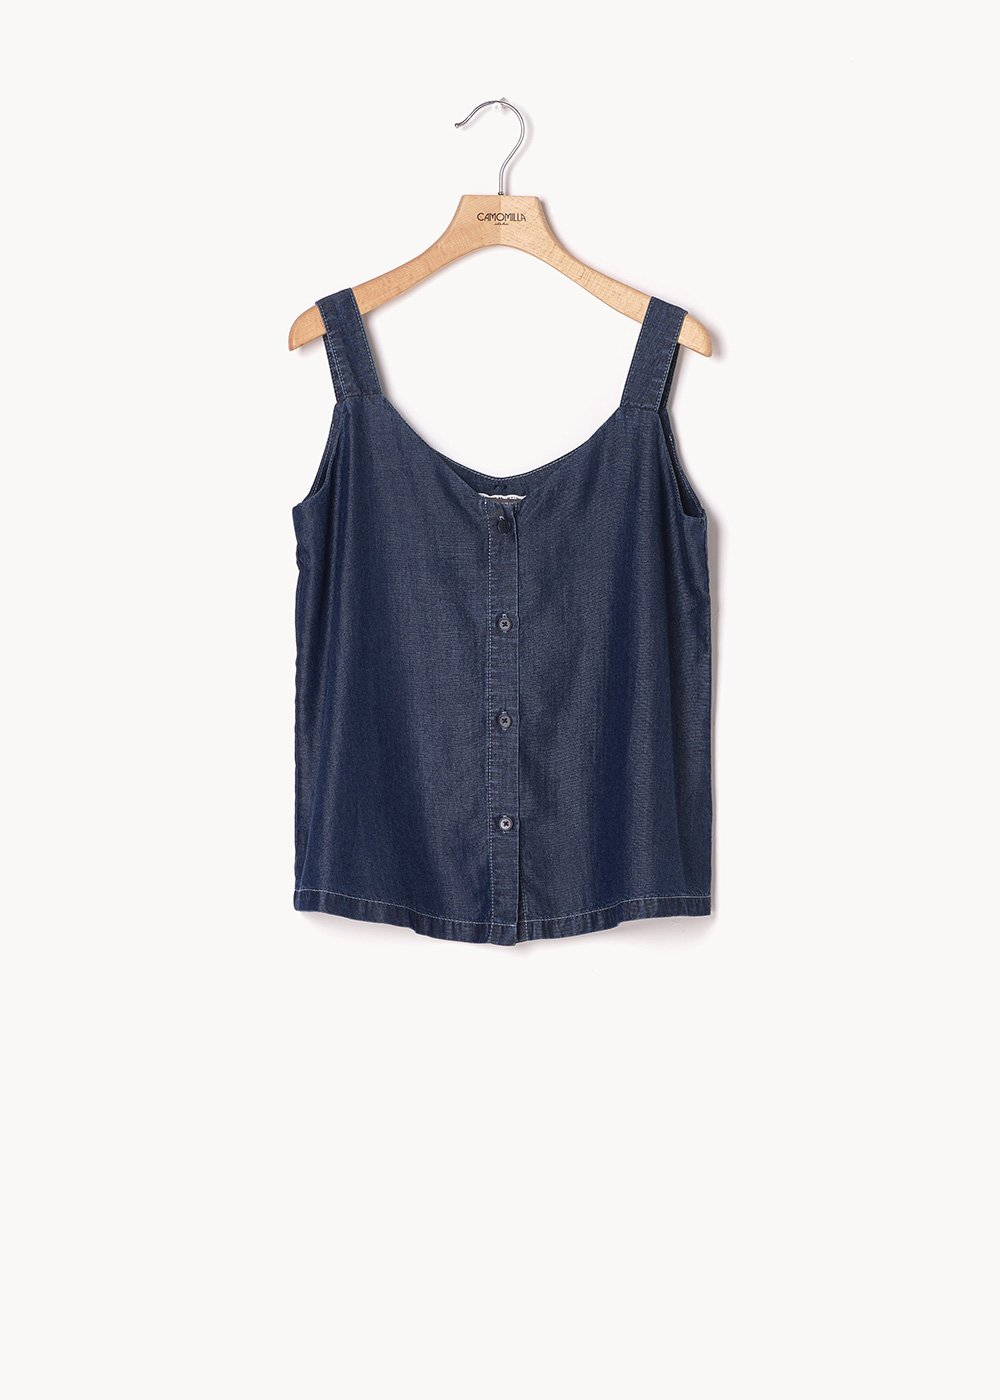 Thor chambray top with buttons - Dark Denim - Woman